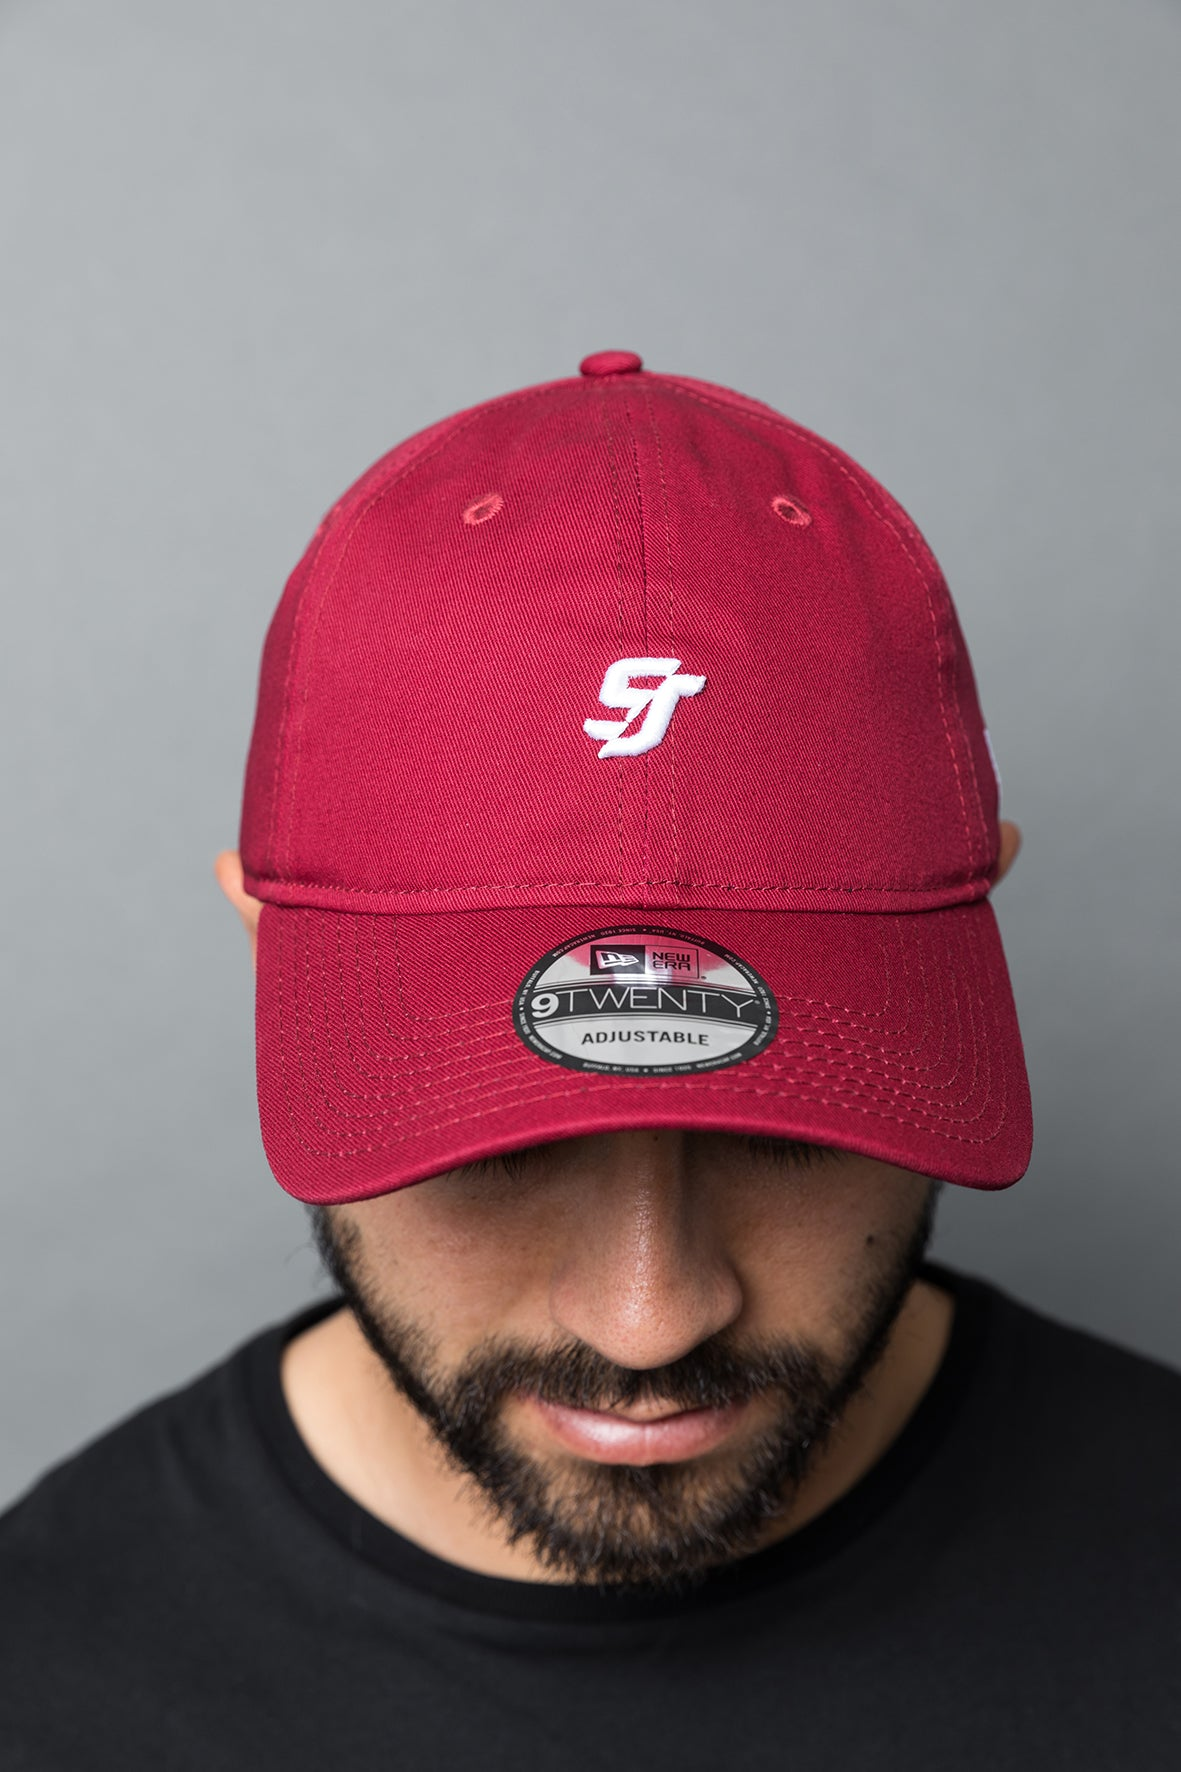 SJ Cap - New Era 920 - Cardinal / White